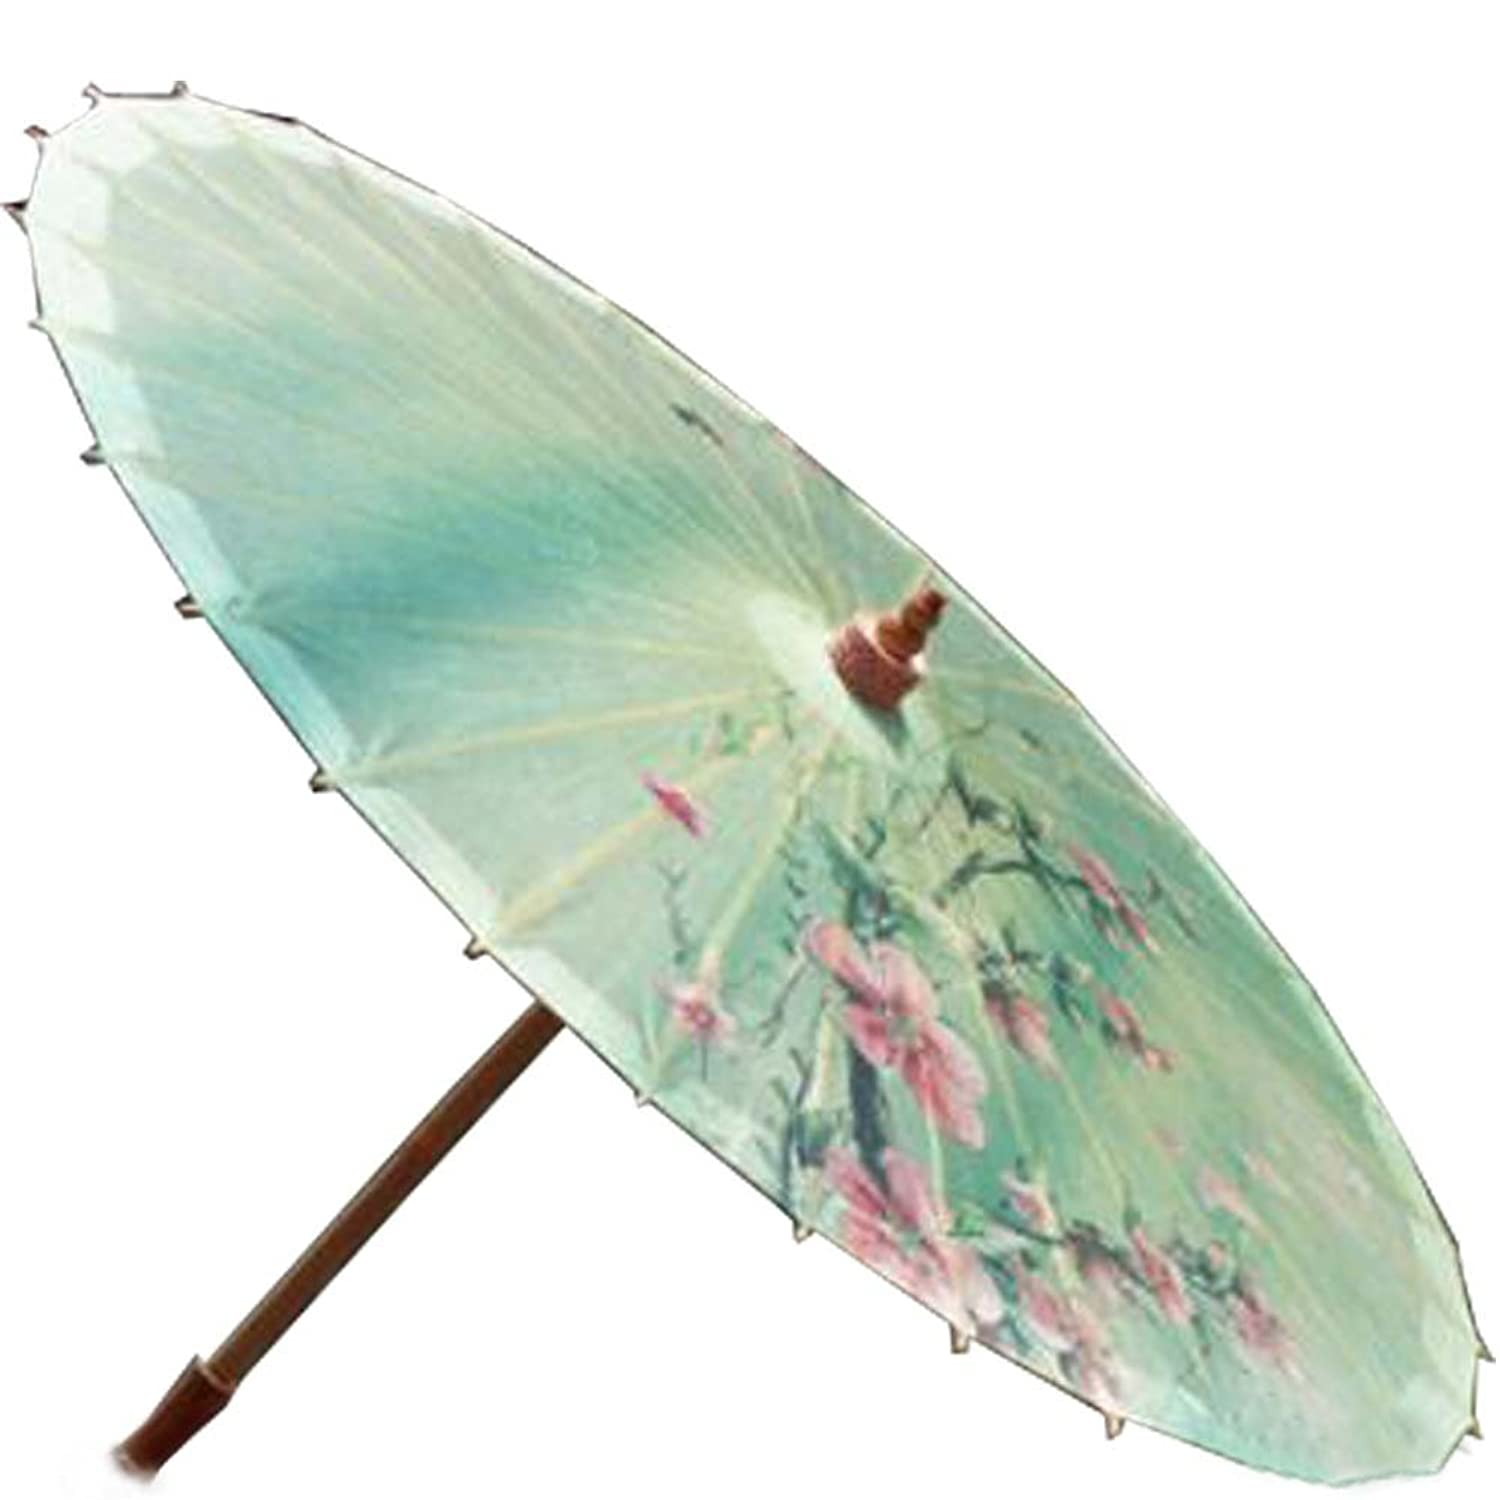 Vintage Style Parasols and Umbrellas [Spring Breeze] Rainproof Handmade Chinese Oil Paper Umbrella 33 inches $33.79 AT vintagedancer.com